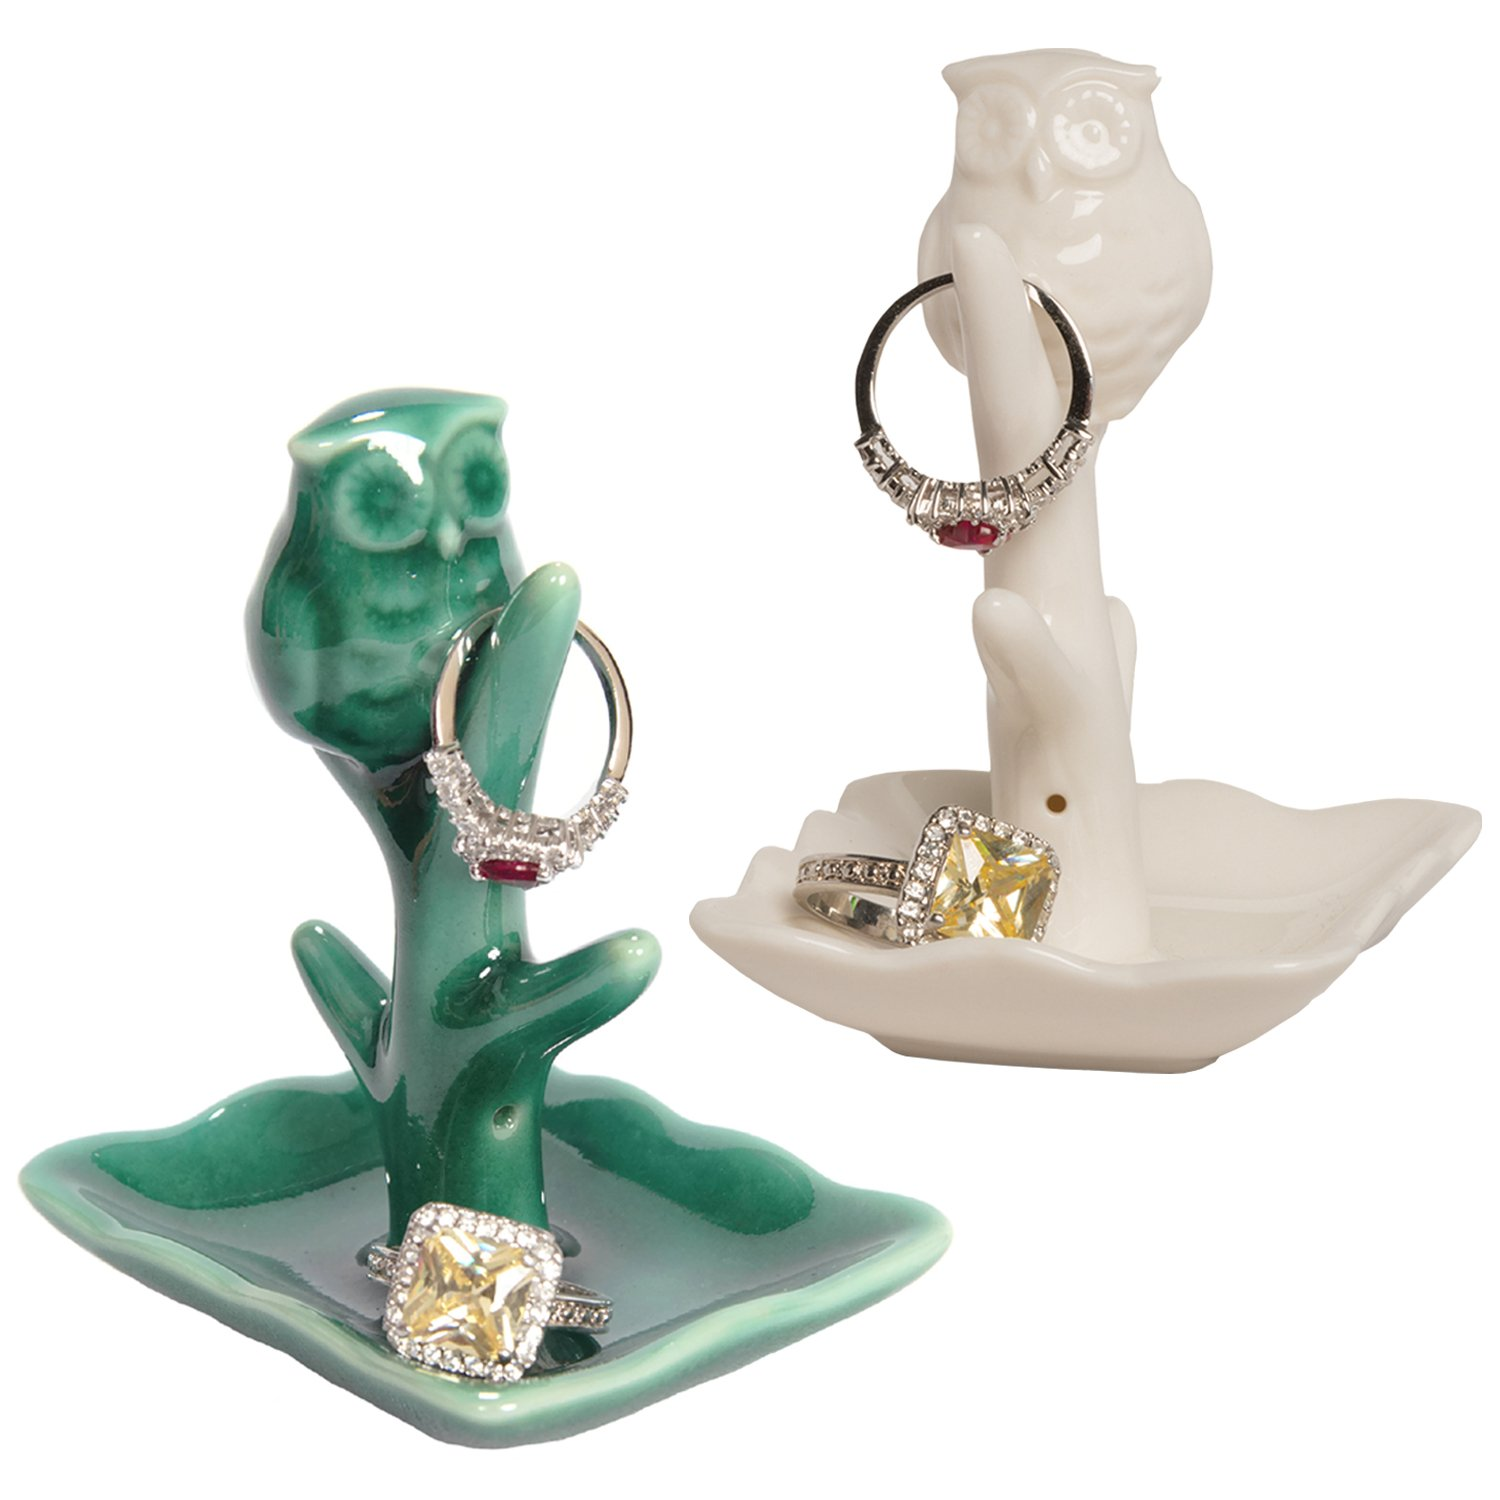 Beth Marie Luxury Boutique Owl Ring Holder with Tree Dish 2-Pack Teal and White Ceramic Engagement Wedding Ring Holders